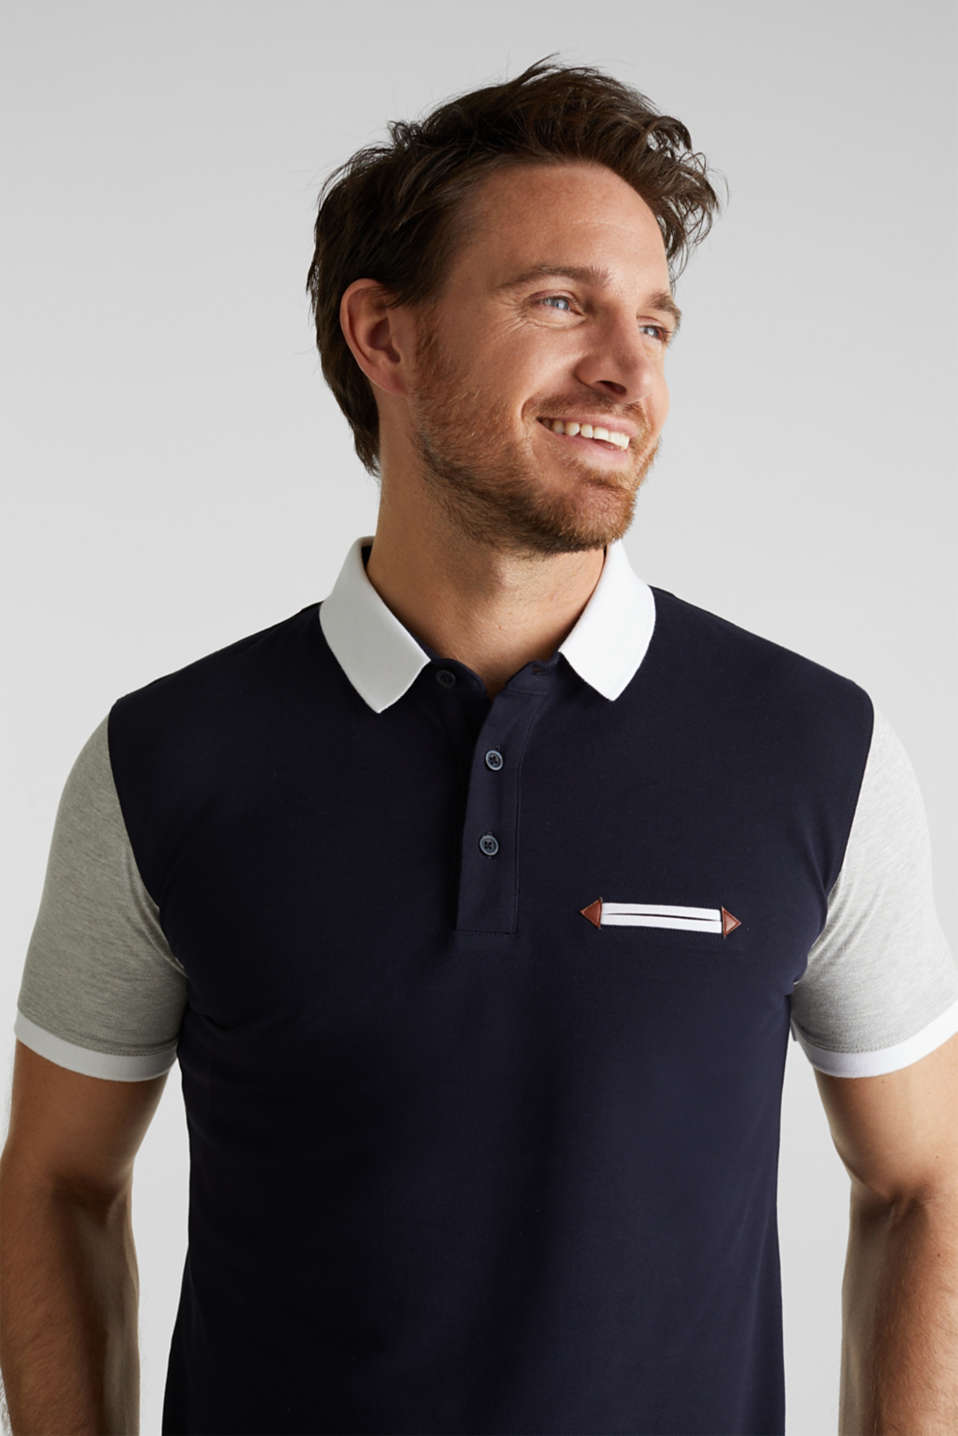 Piqué polo shirt with organic cotton, NAVY 2, detail image number 4